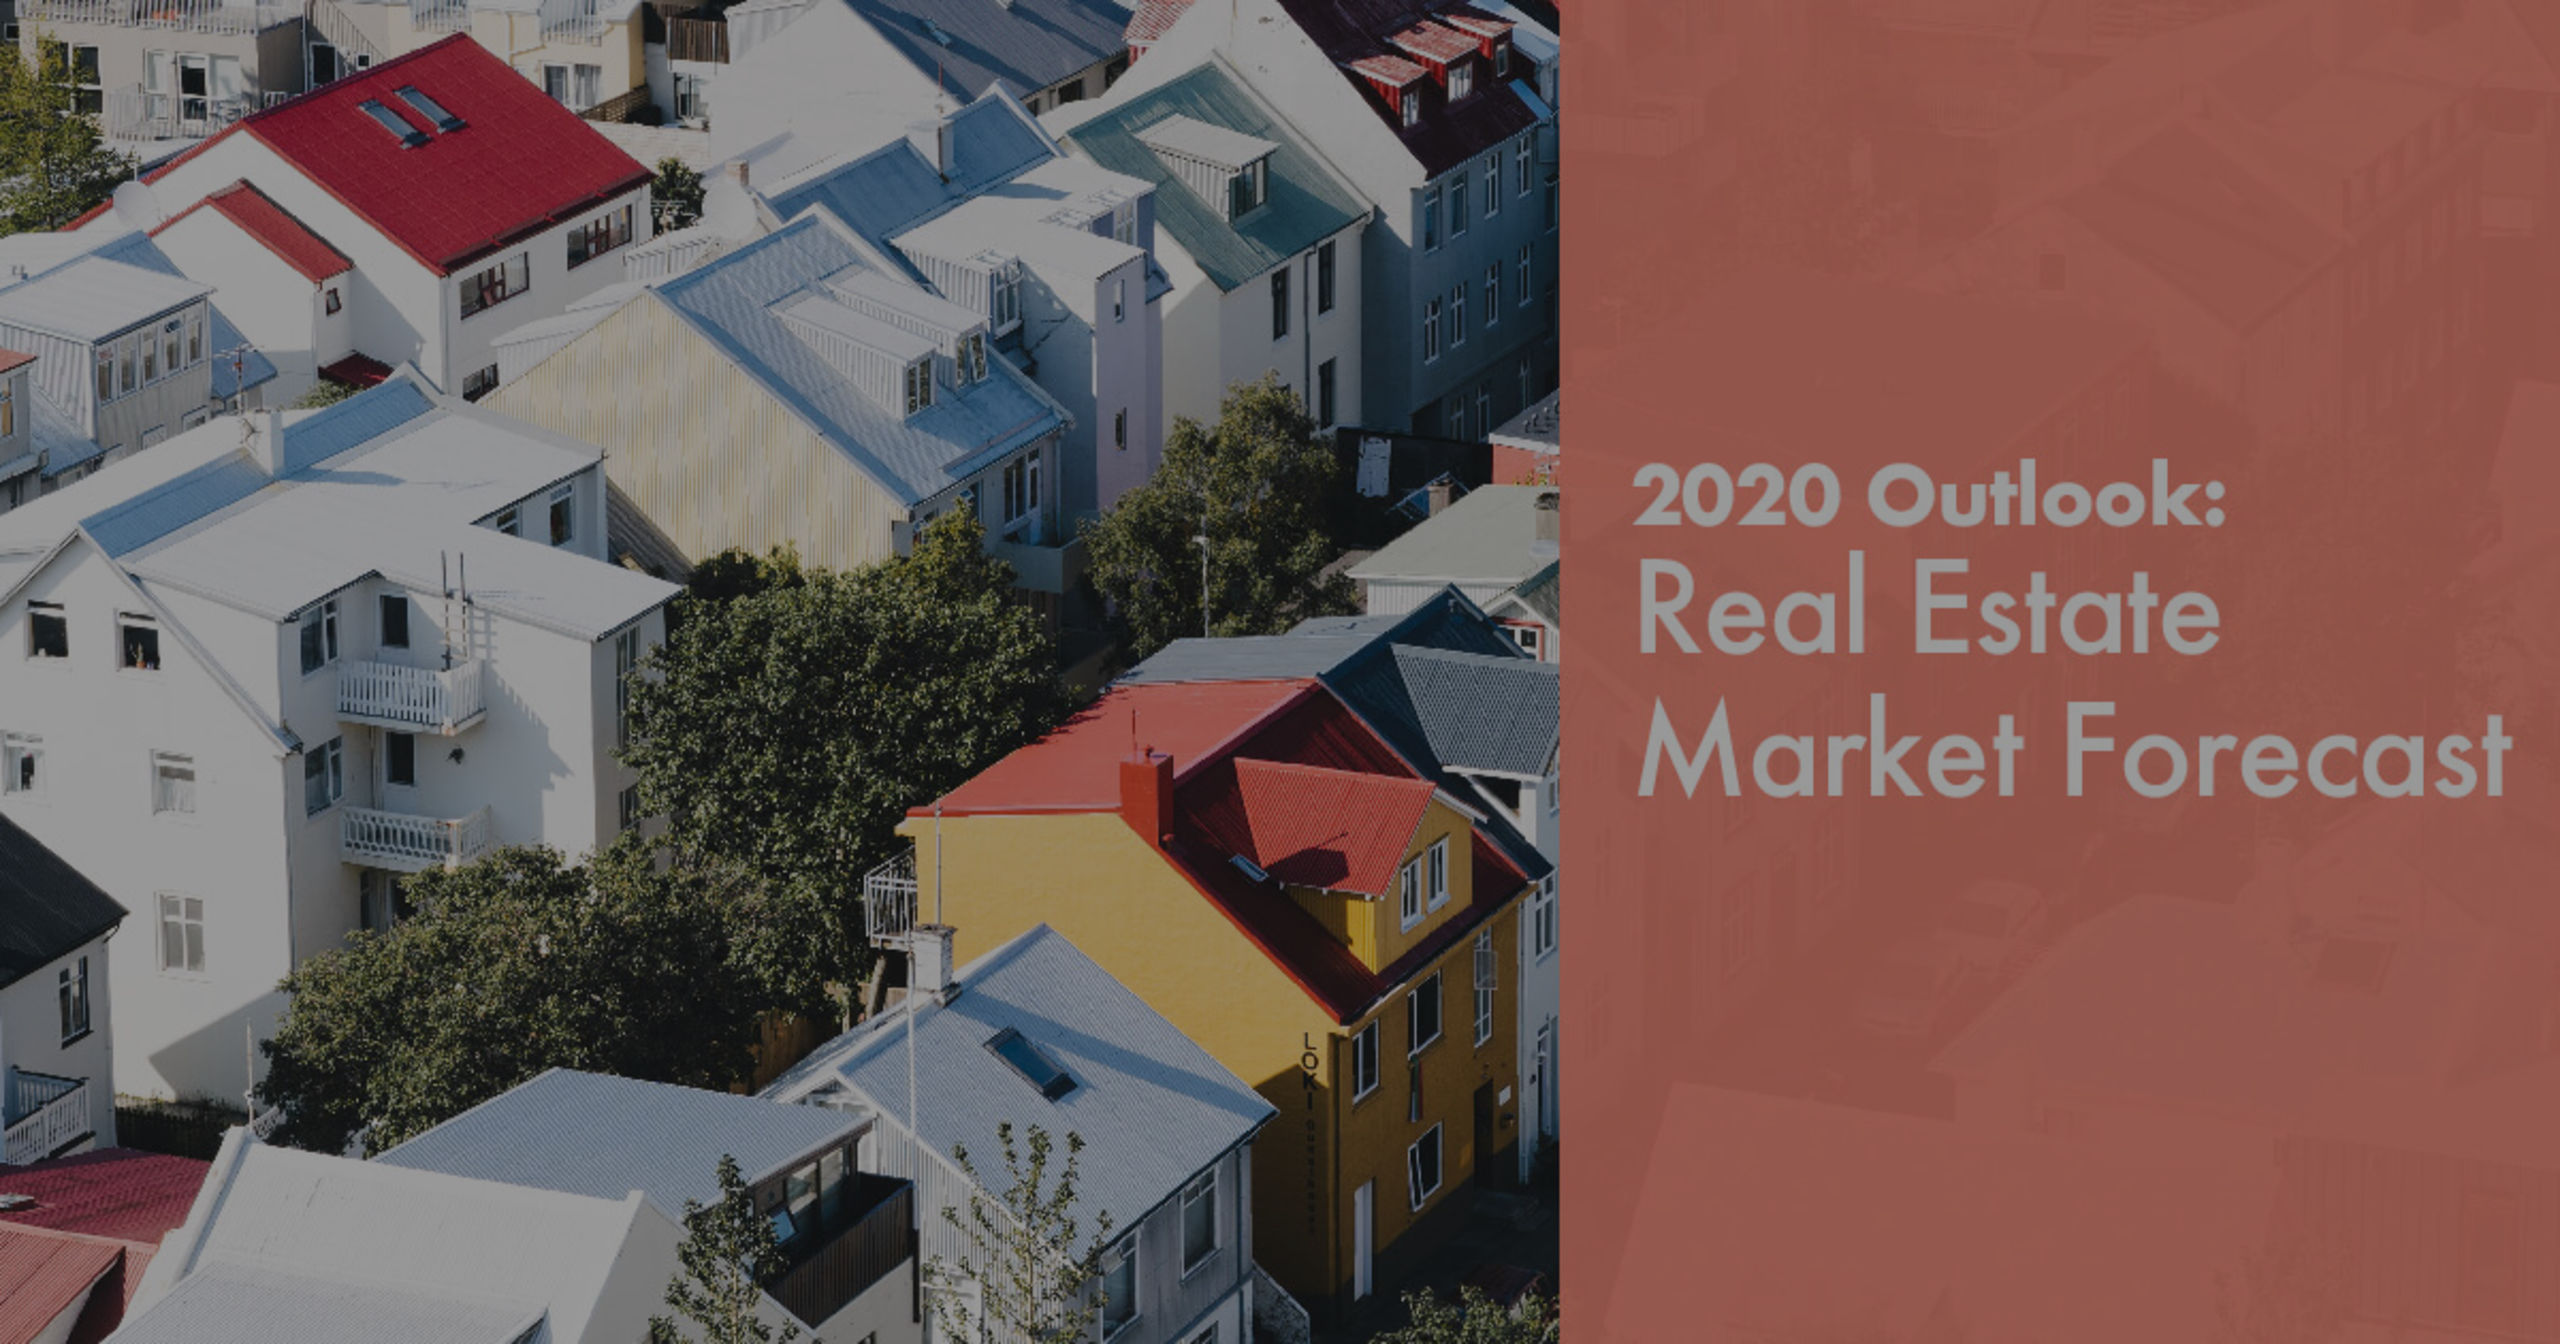 Buy or Sell Real Estate?